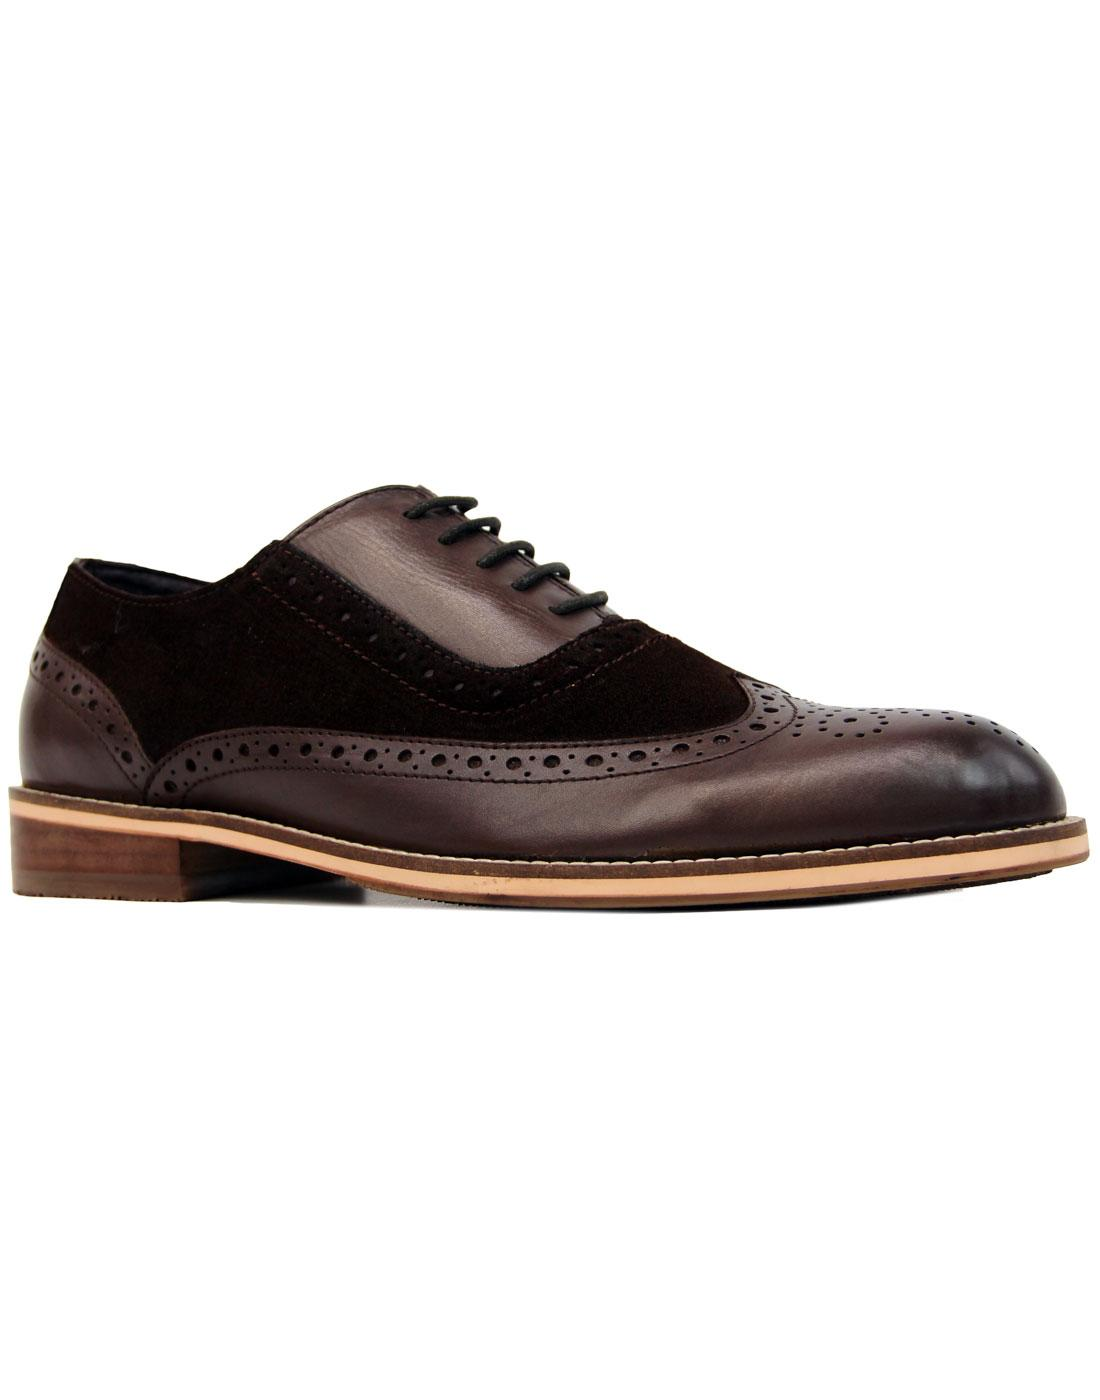 Saxby PAOLO VANDINI Mod Oxford Saddle Brogues (B)